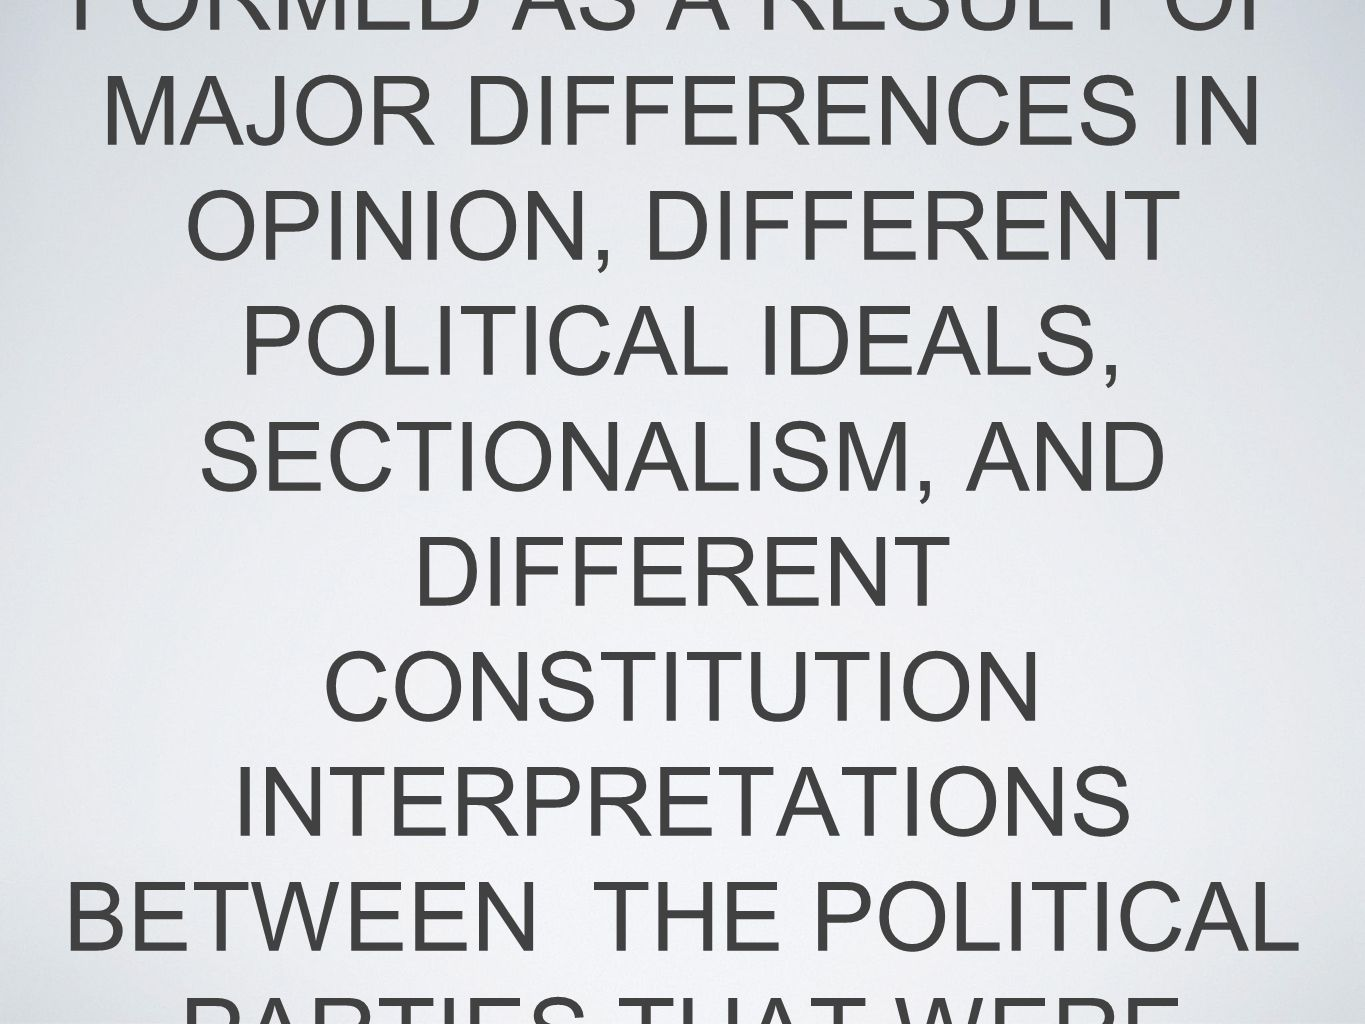 POLITICAL PARTIES IN THE NEW NATION WERE FORMED AS A RESULT OF MAJOR DIFFERENCES IN OPINION, DIFFERENT POLITICAL IDEALS, SECTIONALISM, AND DIFFERENT CONSTITUTION INTERPRETATIONS BETWEEN THE POLITICAL PARTIES THAT WERE PRESENT IN THE YEARS BETWEEN 1791-1820.